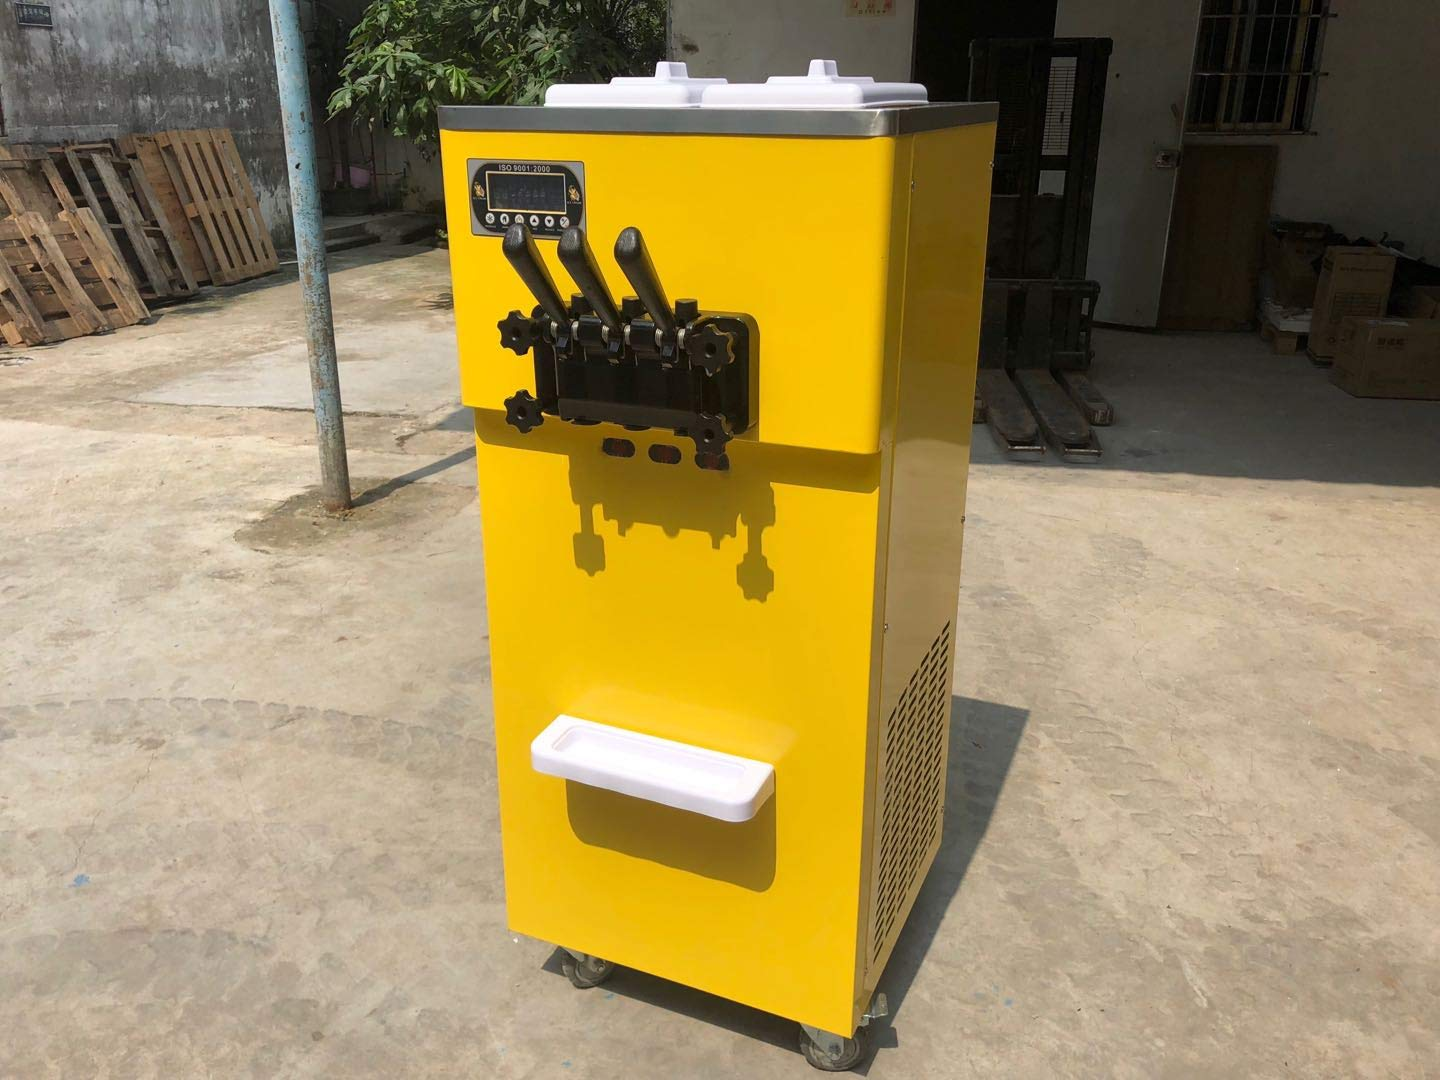 Free shipment to door High capacity 3 flavors taylor soft serve ice cream machine 2+1 mixed flavors soft ice cream machine auto precooling,counting function with full refrigerant,Stainless steel beater, gear box, Panasonic compressor